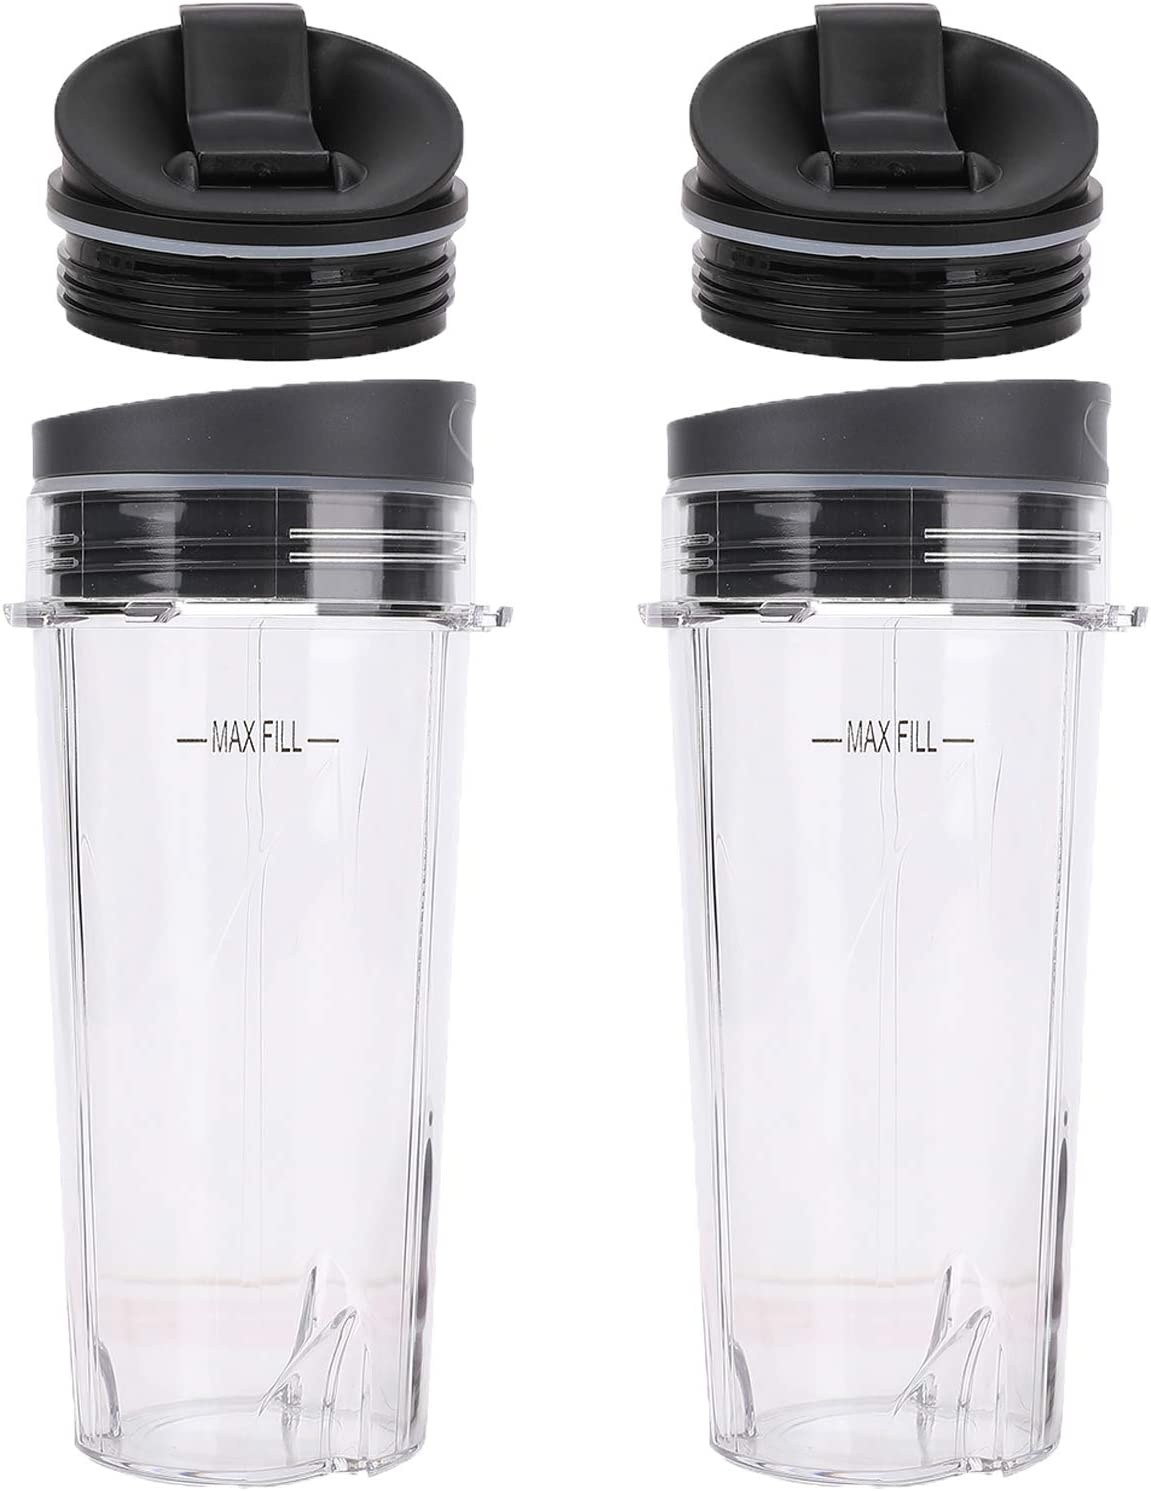 2 Pack 16oz Cups with Lids and Sip N Seal Lids, Ninja Single Serve Blender Cups Replacement Parts Compatible withNutri Ninja BL660 BL770 BL780 BL740 BL810 BL820 BL830